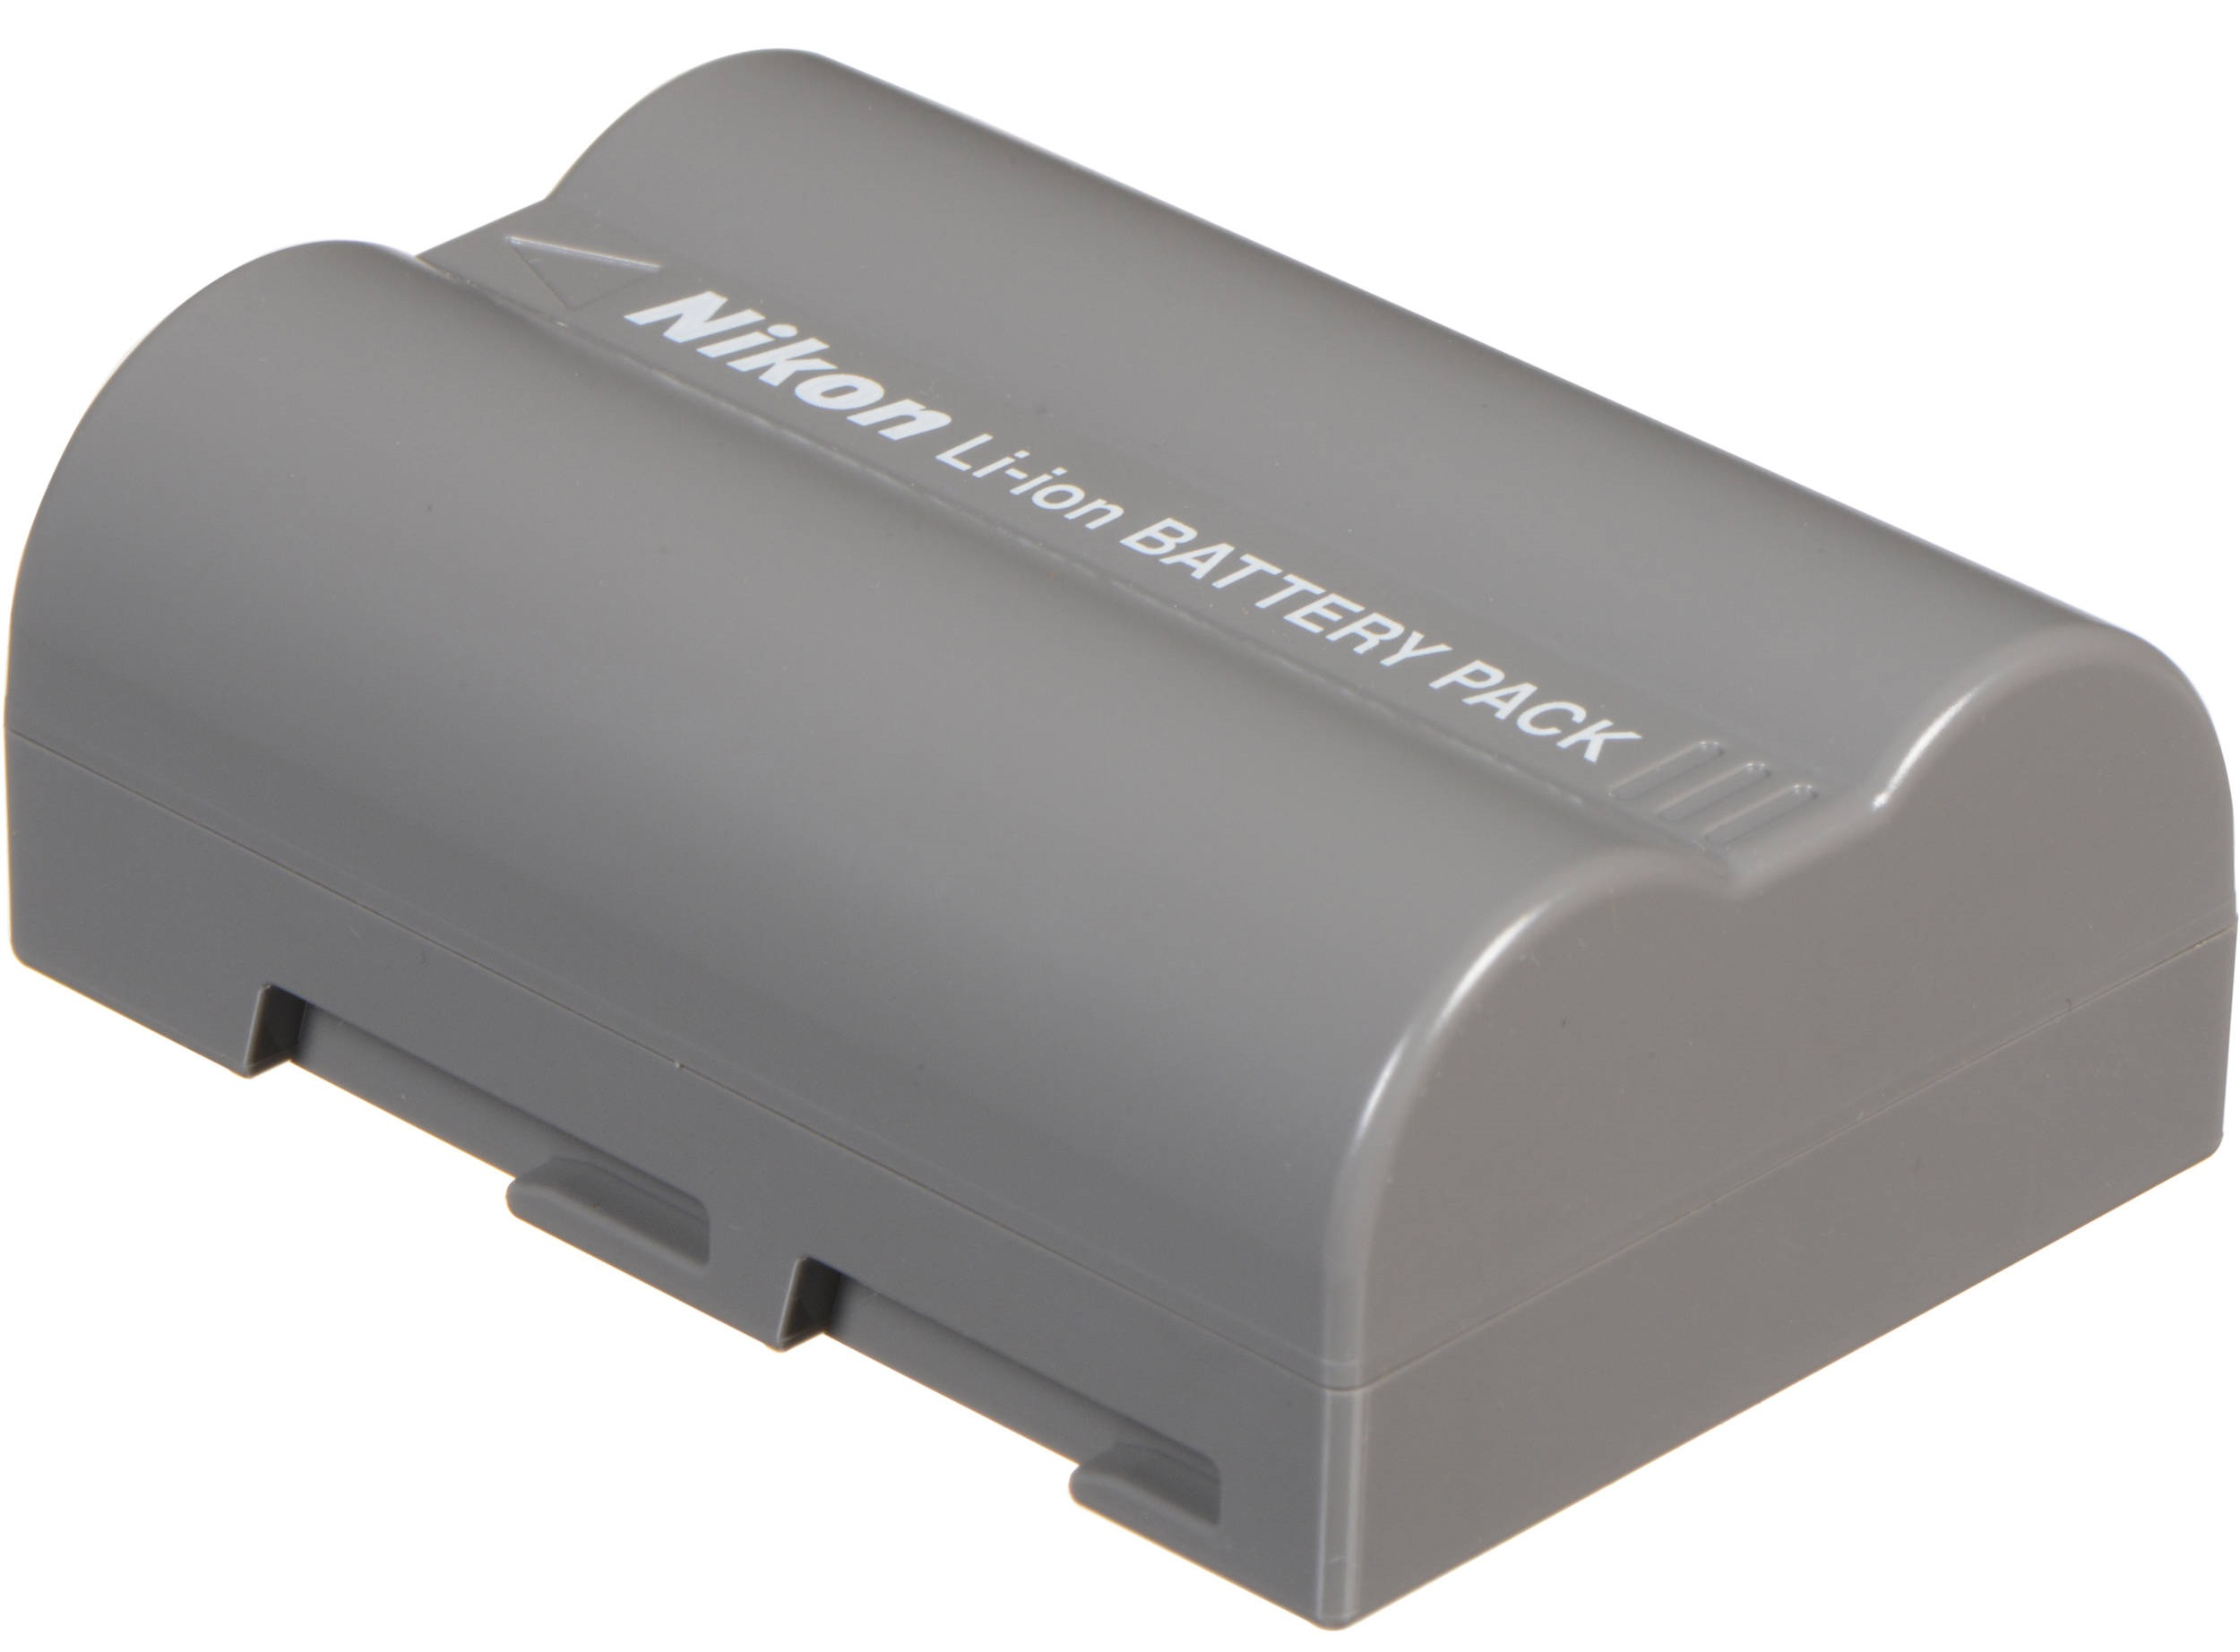 Nikon EN-EL3e Rechargeable Li-ion Battery